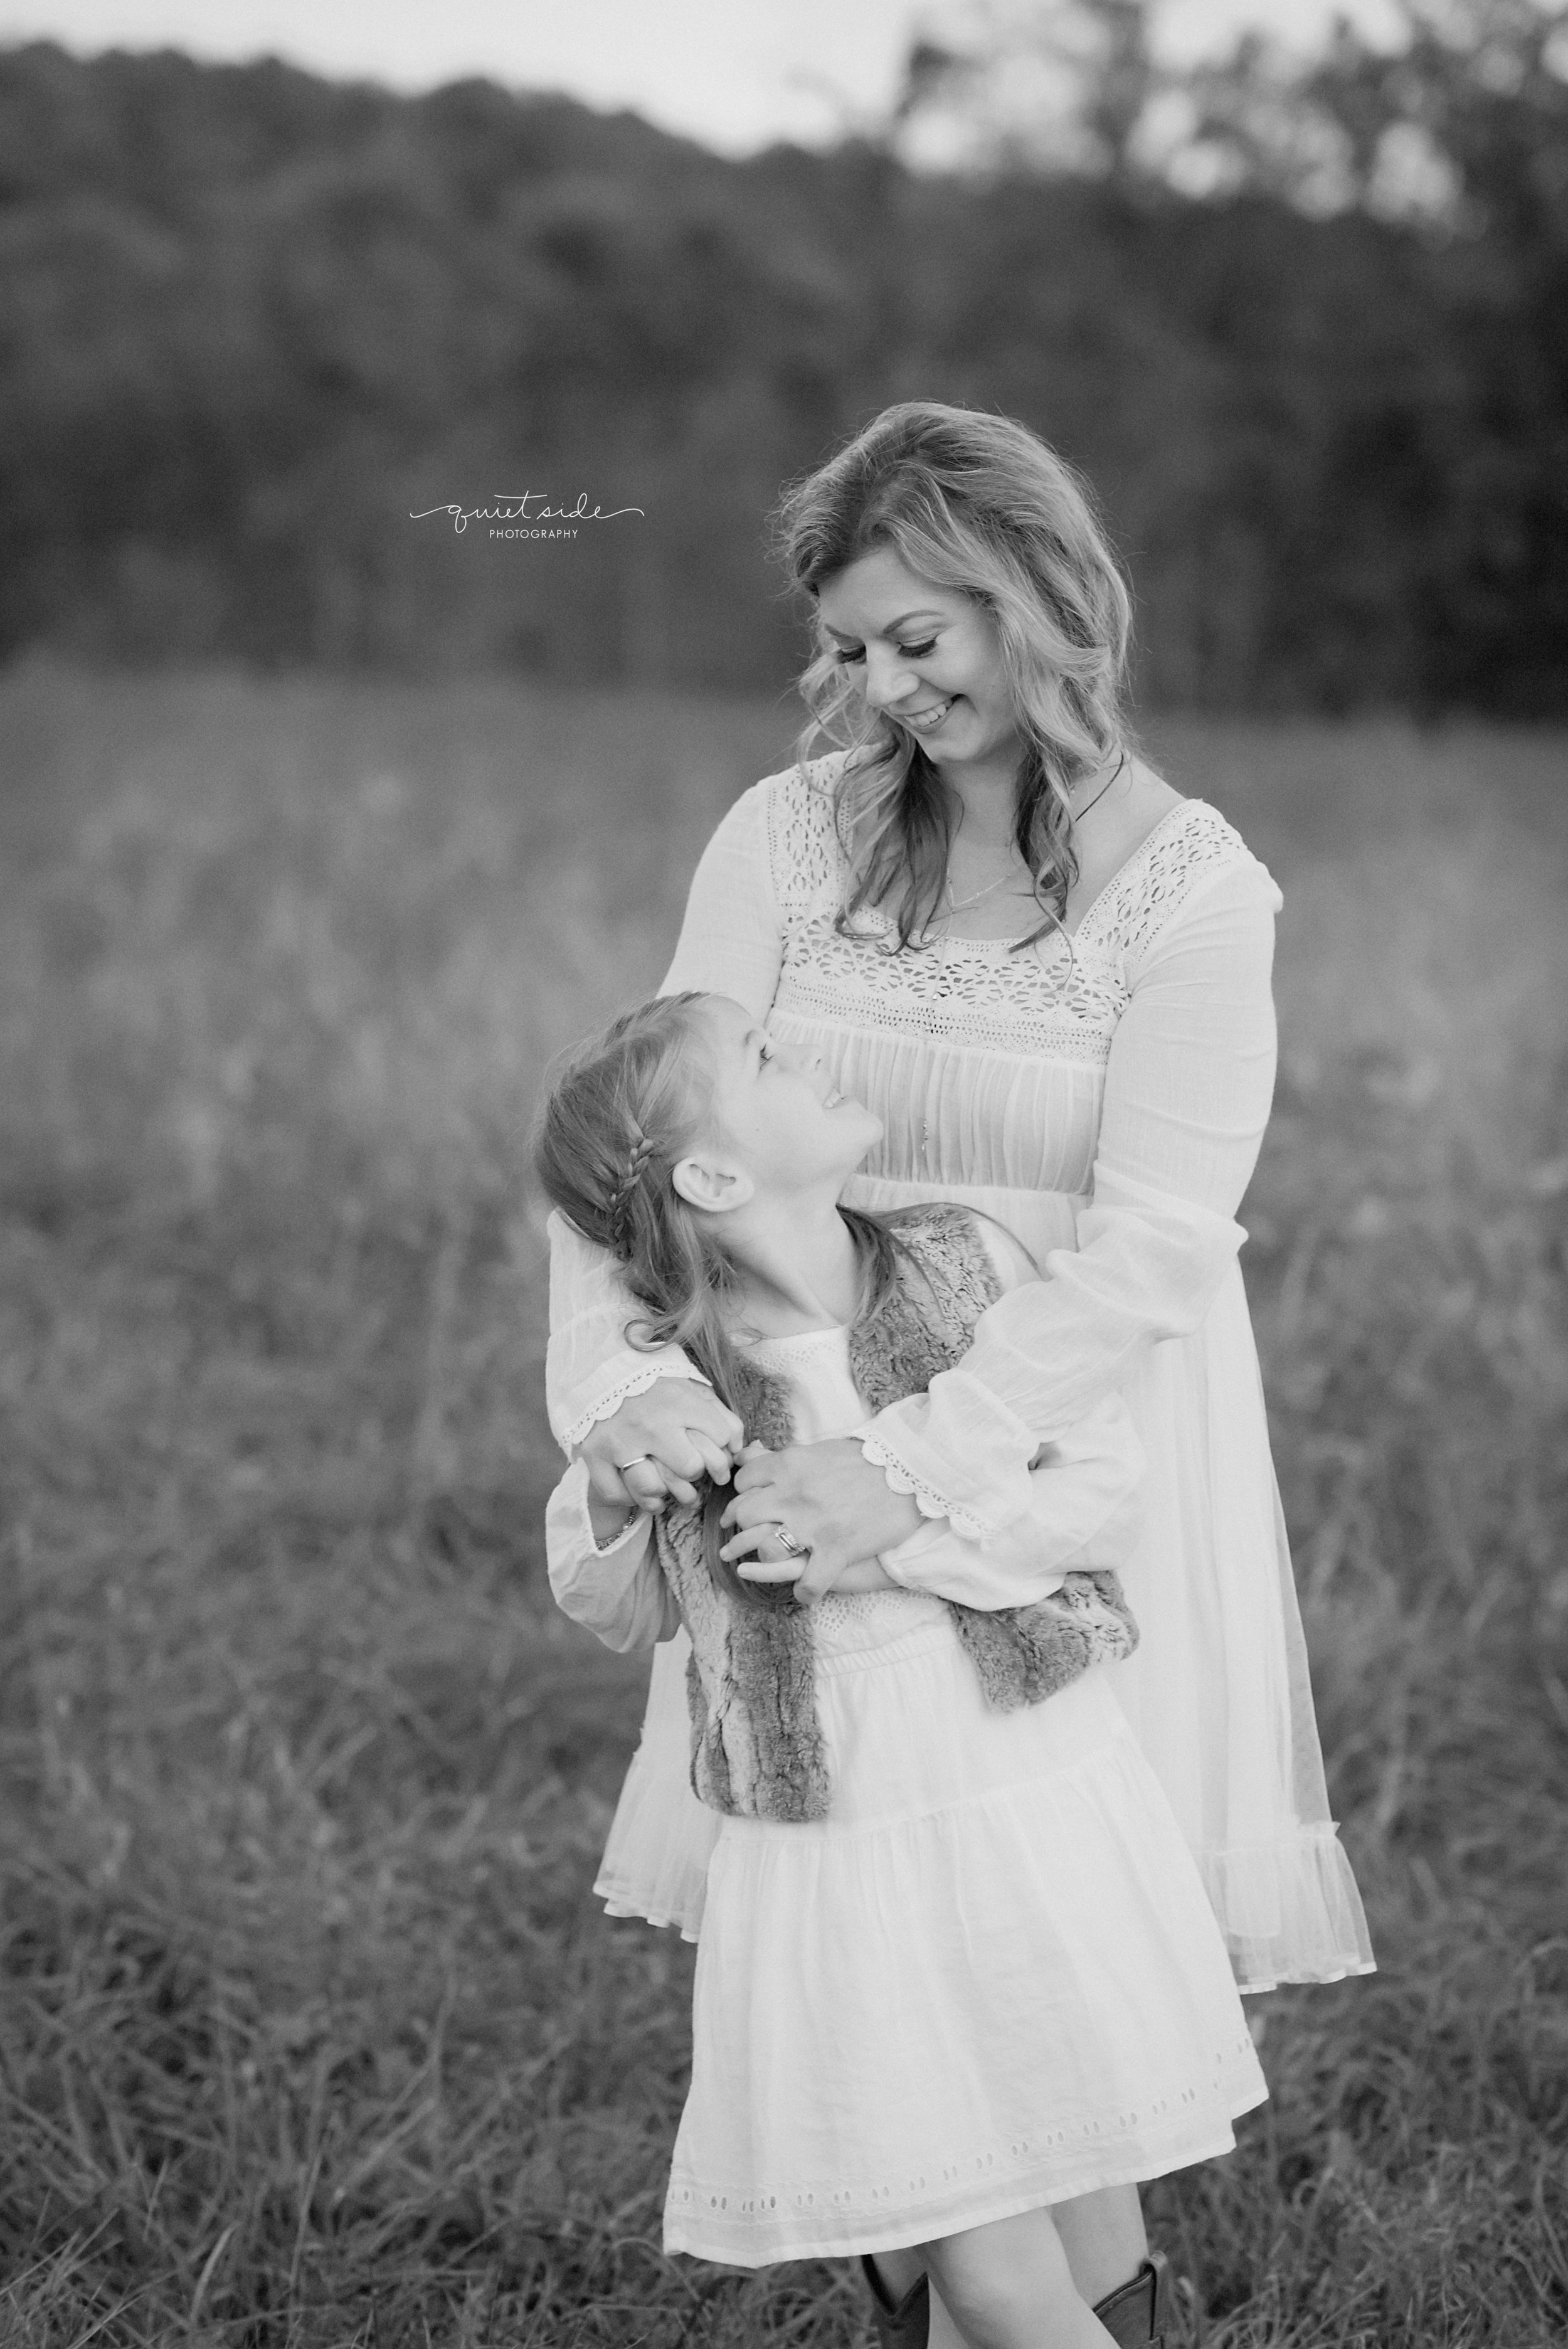 QuietSidePhotography-Purcellville, VA- Family-Photographer-Motherhood-Familyof5-SilverbrookFarm-GoldenHour-Sunset-Family-MomandDaughter-blackandwhite-Loudoun County-Virginia-MIlesFamily.jpg